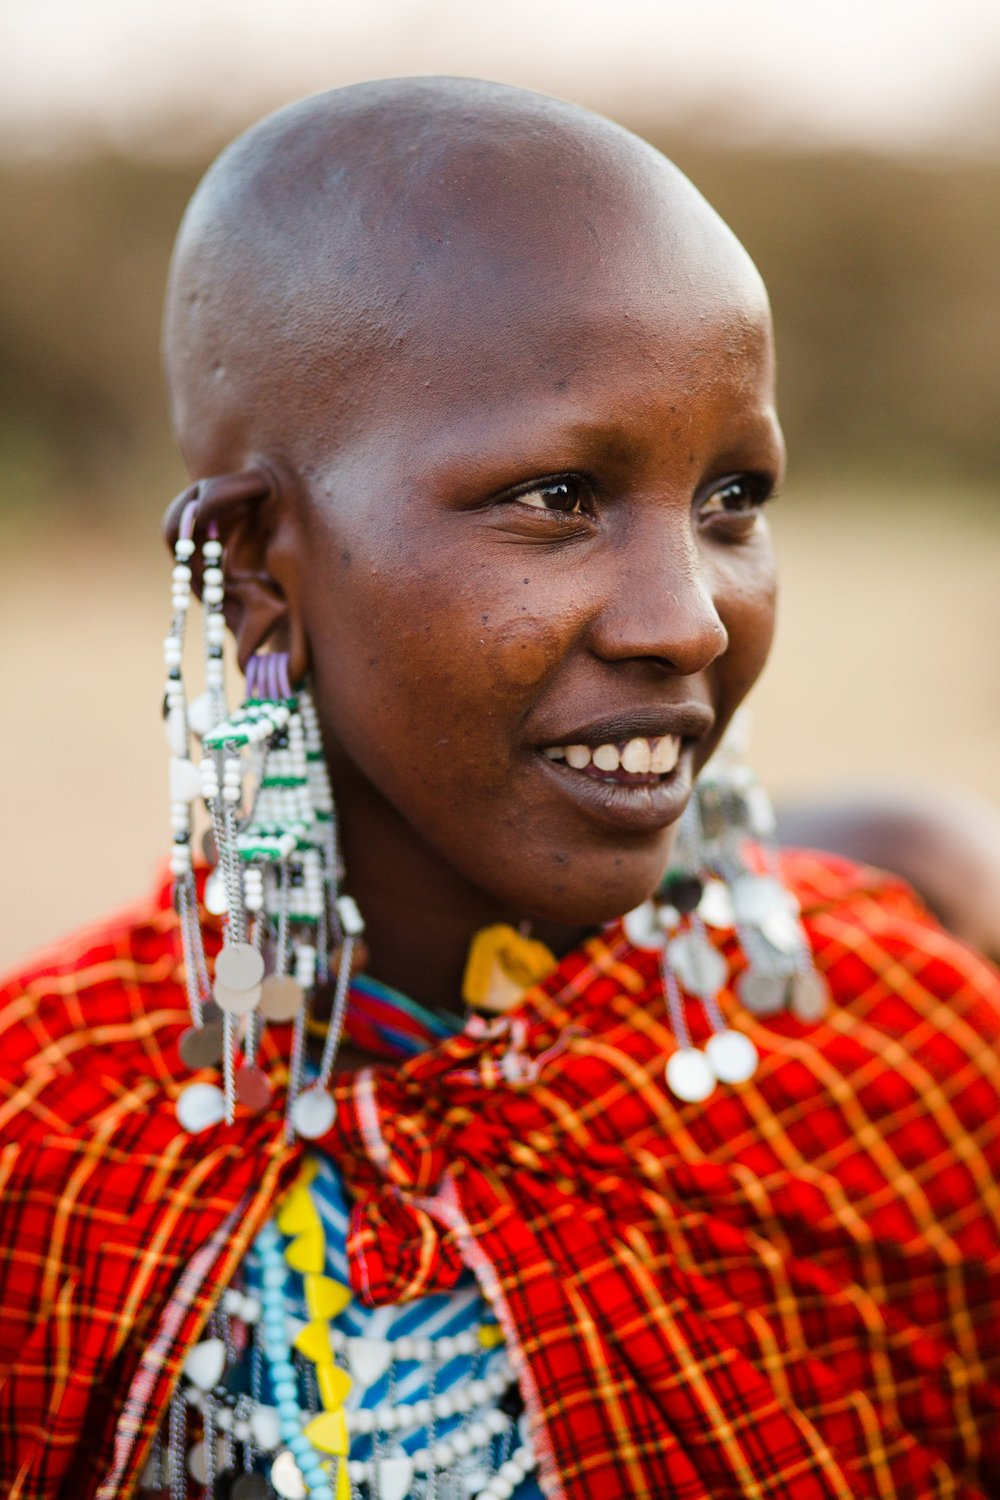 cameron-zegers-travel-photographer-tanzania-seattle-editorial-culture.jpg